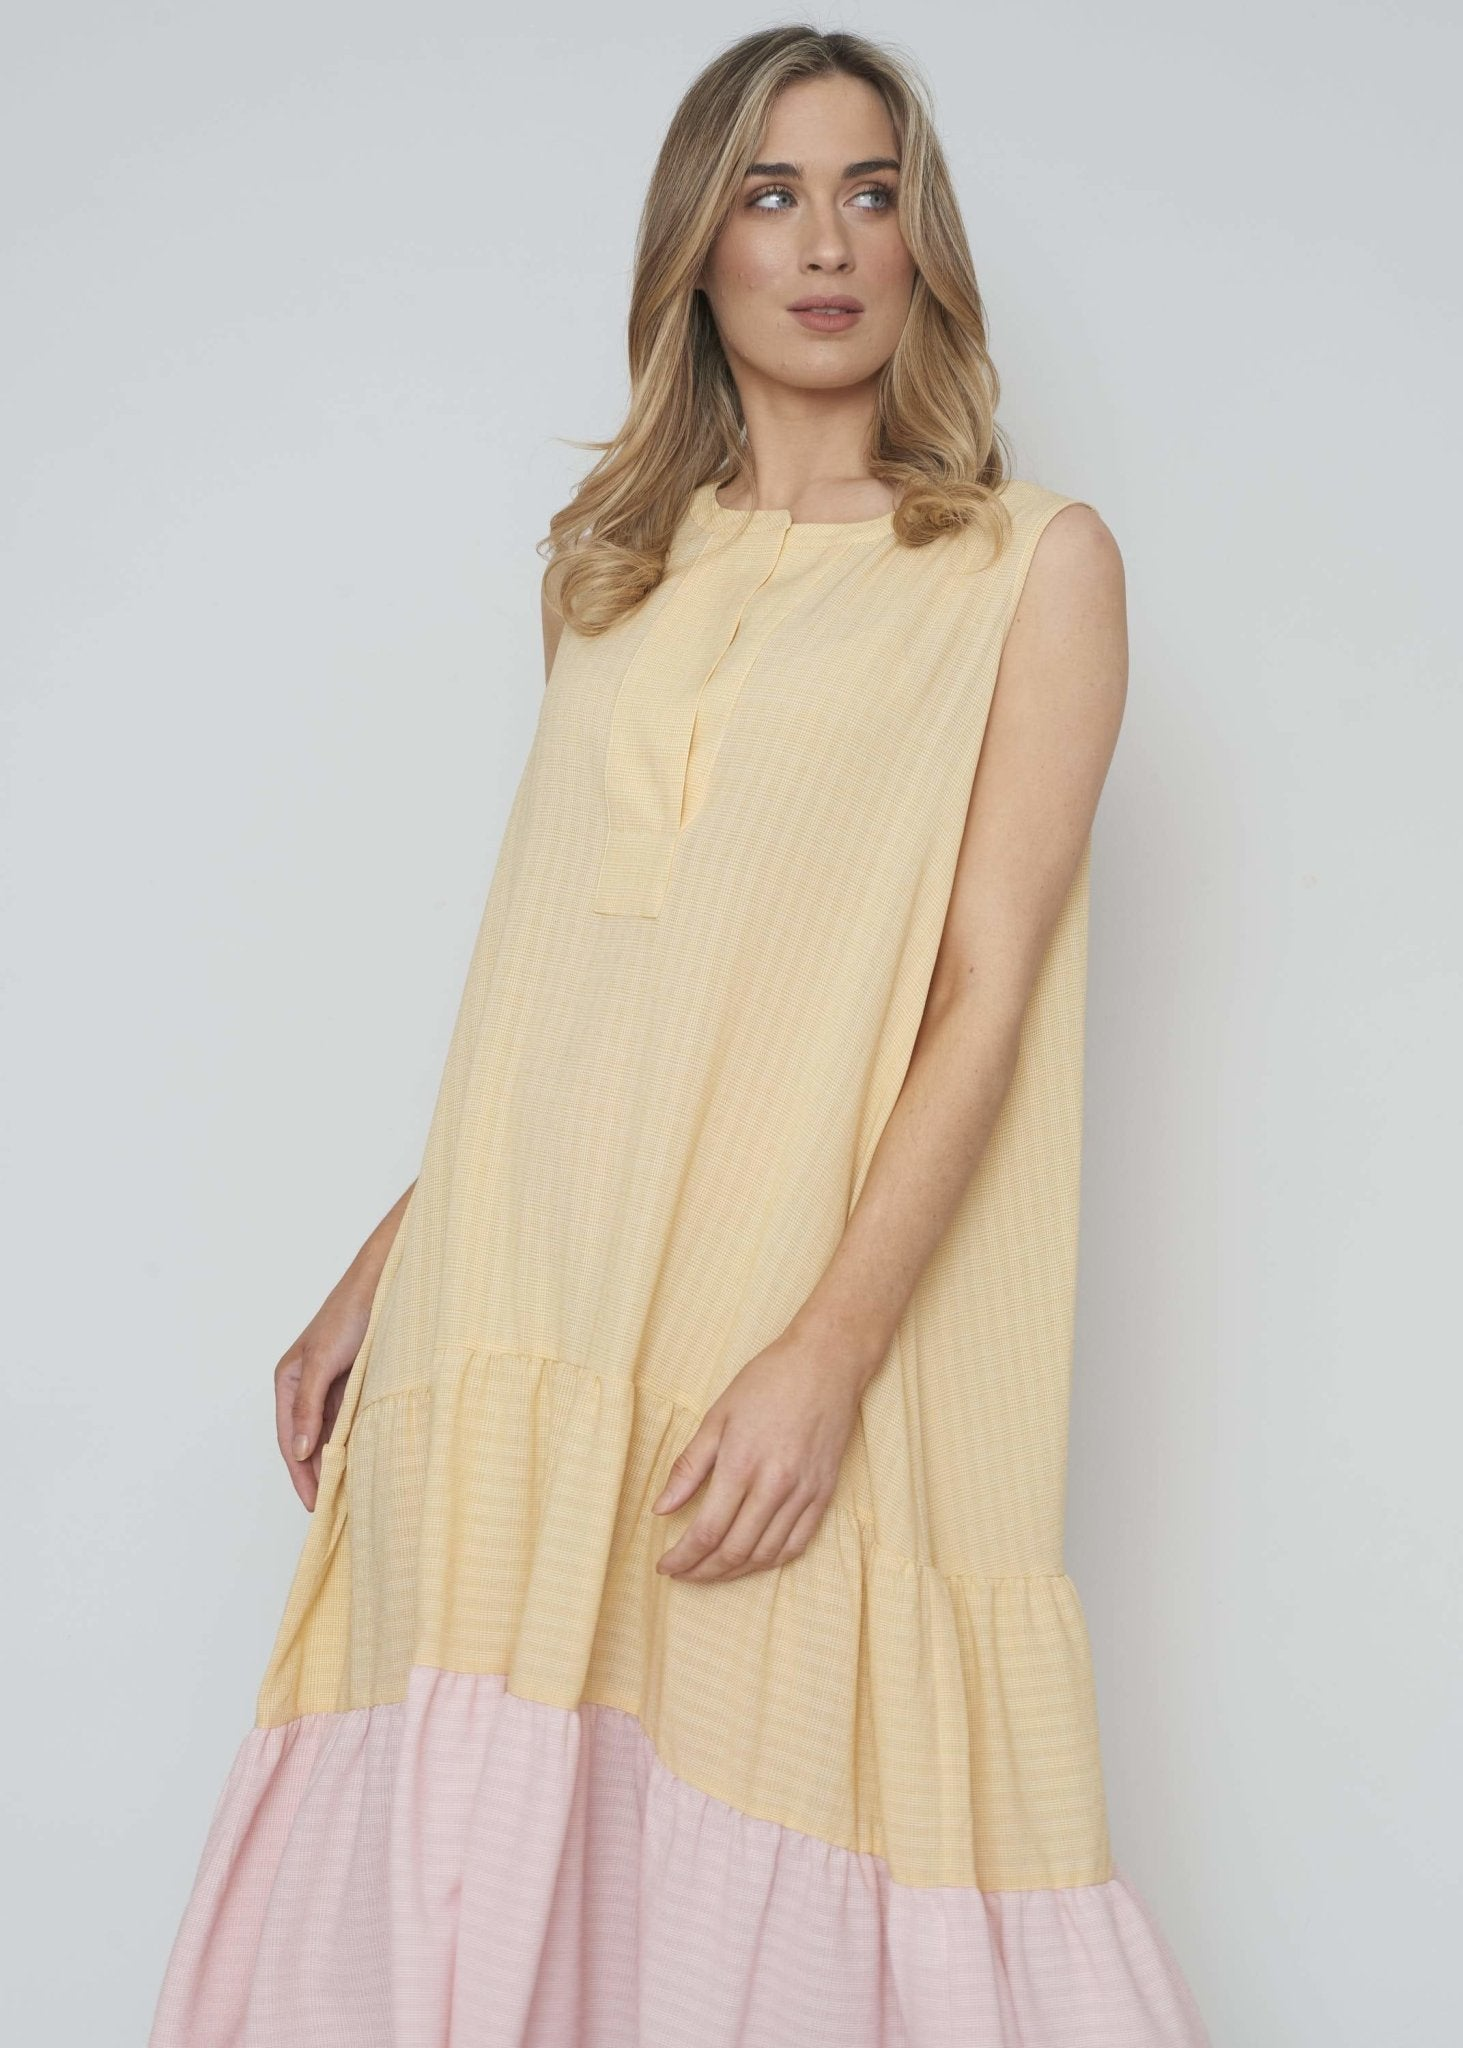 Jasmine Tiered Dress In Lemon And Pink - The Walk in Wardrobe